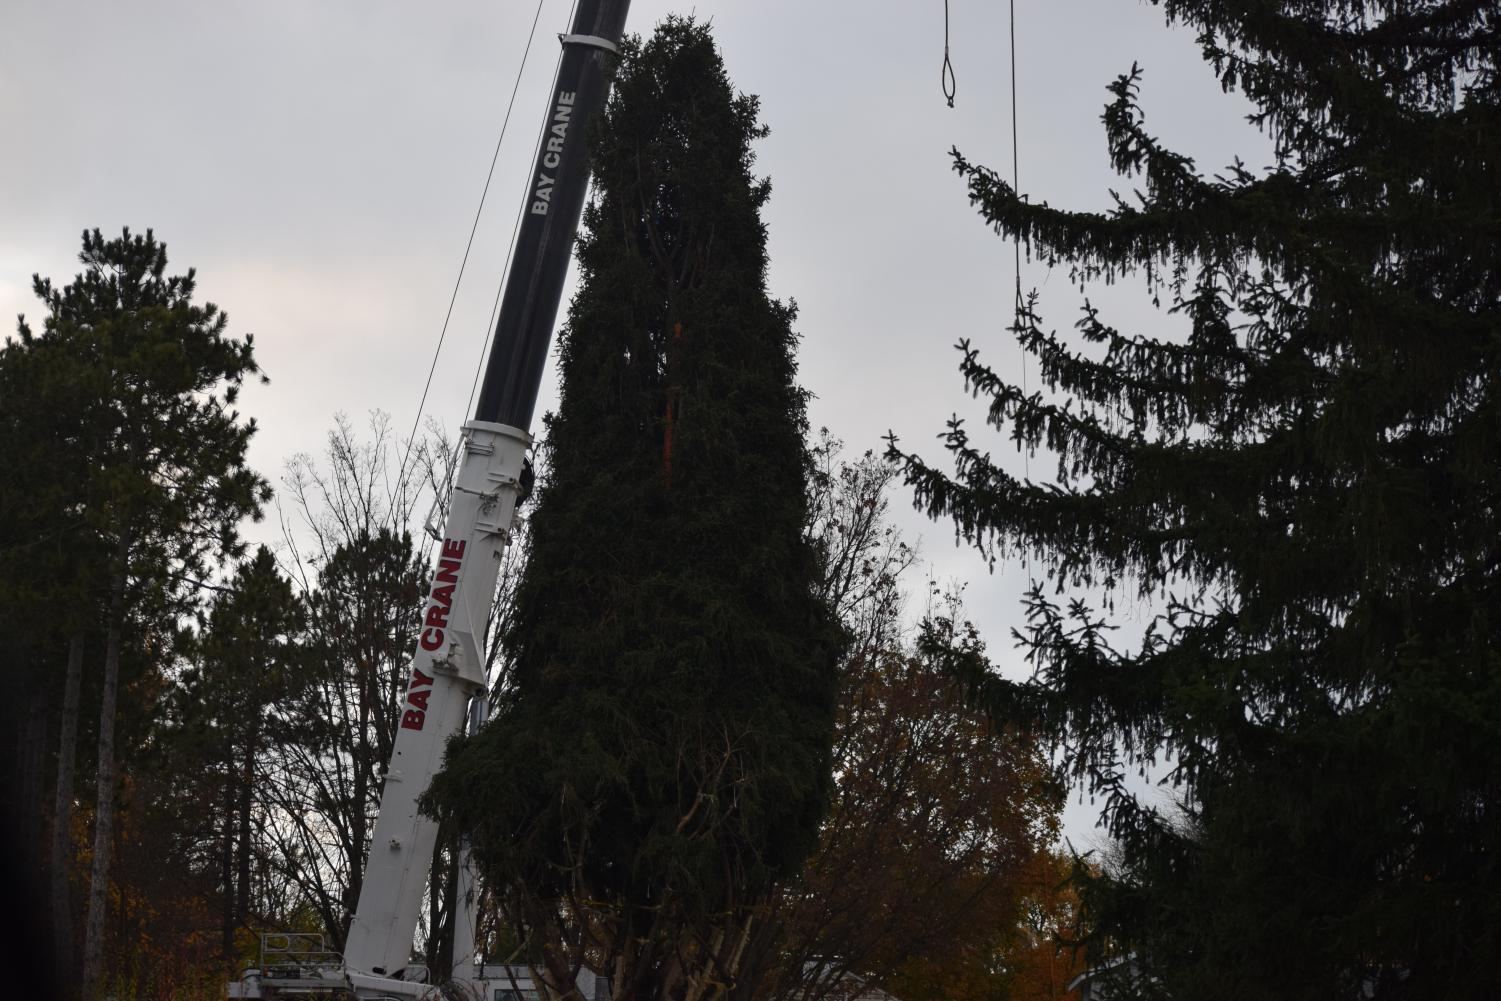 "This year's Rockefeller Center Christmas tree is cut down and wrapped up to be shipped. The tree was selected from a neighborhood in State College. ""I think it's very special to have such an important tree be chosen from our city"" Junior Phillip Vollmer said."